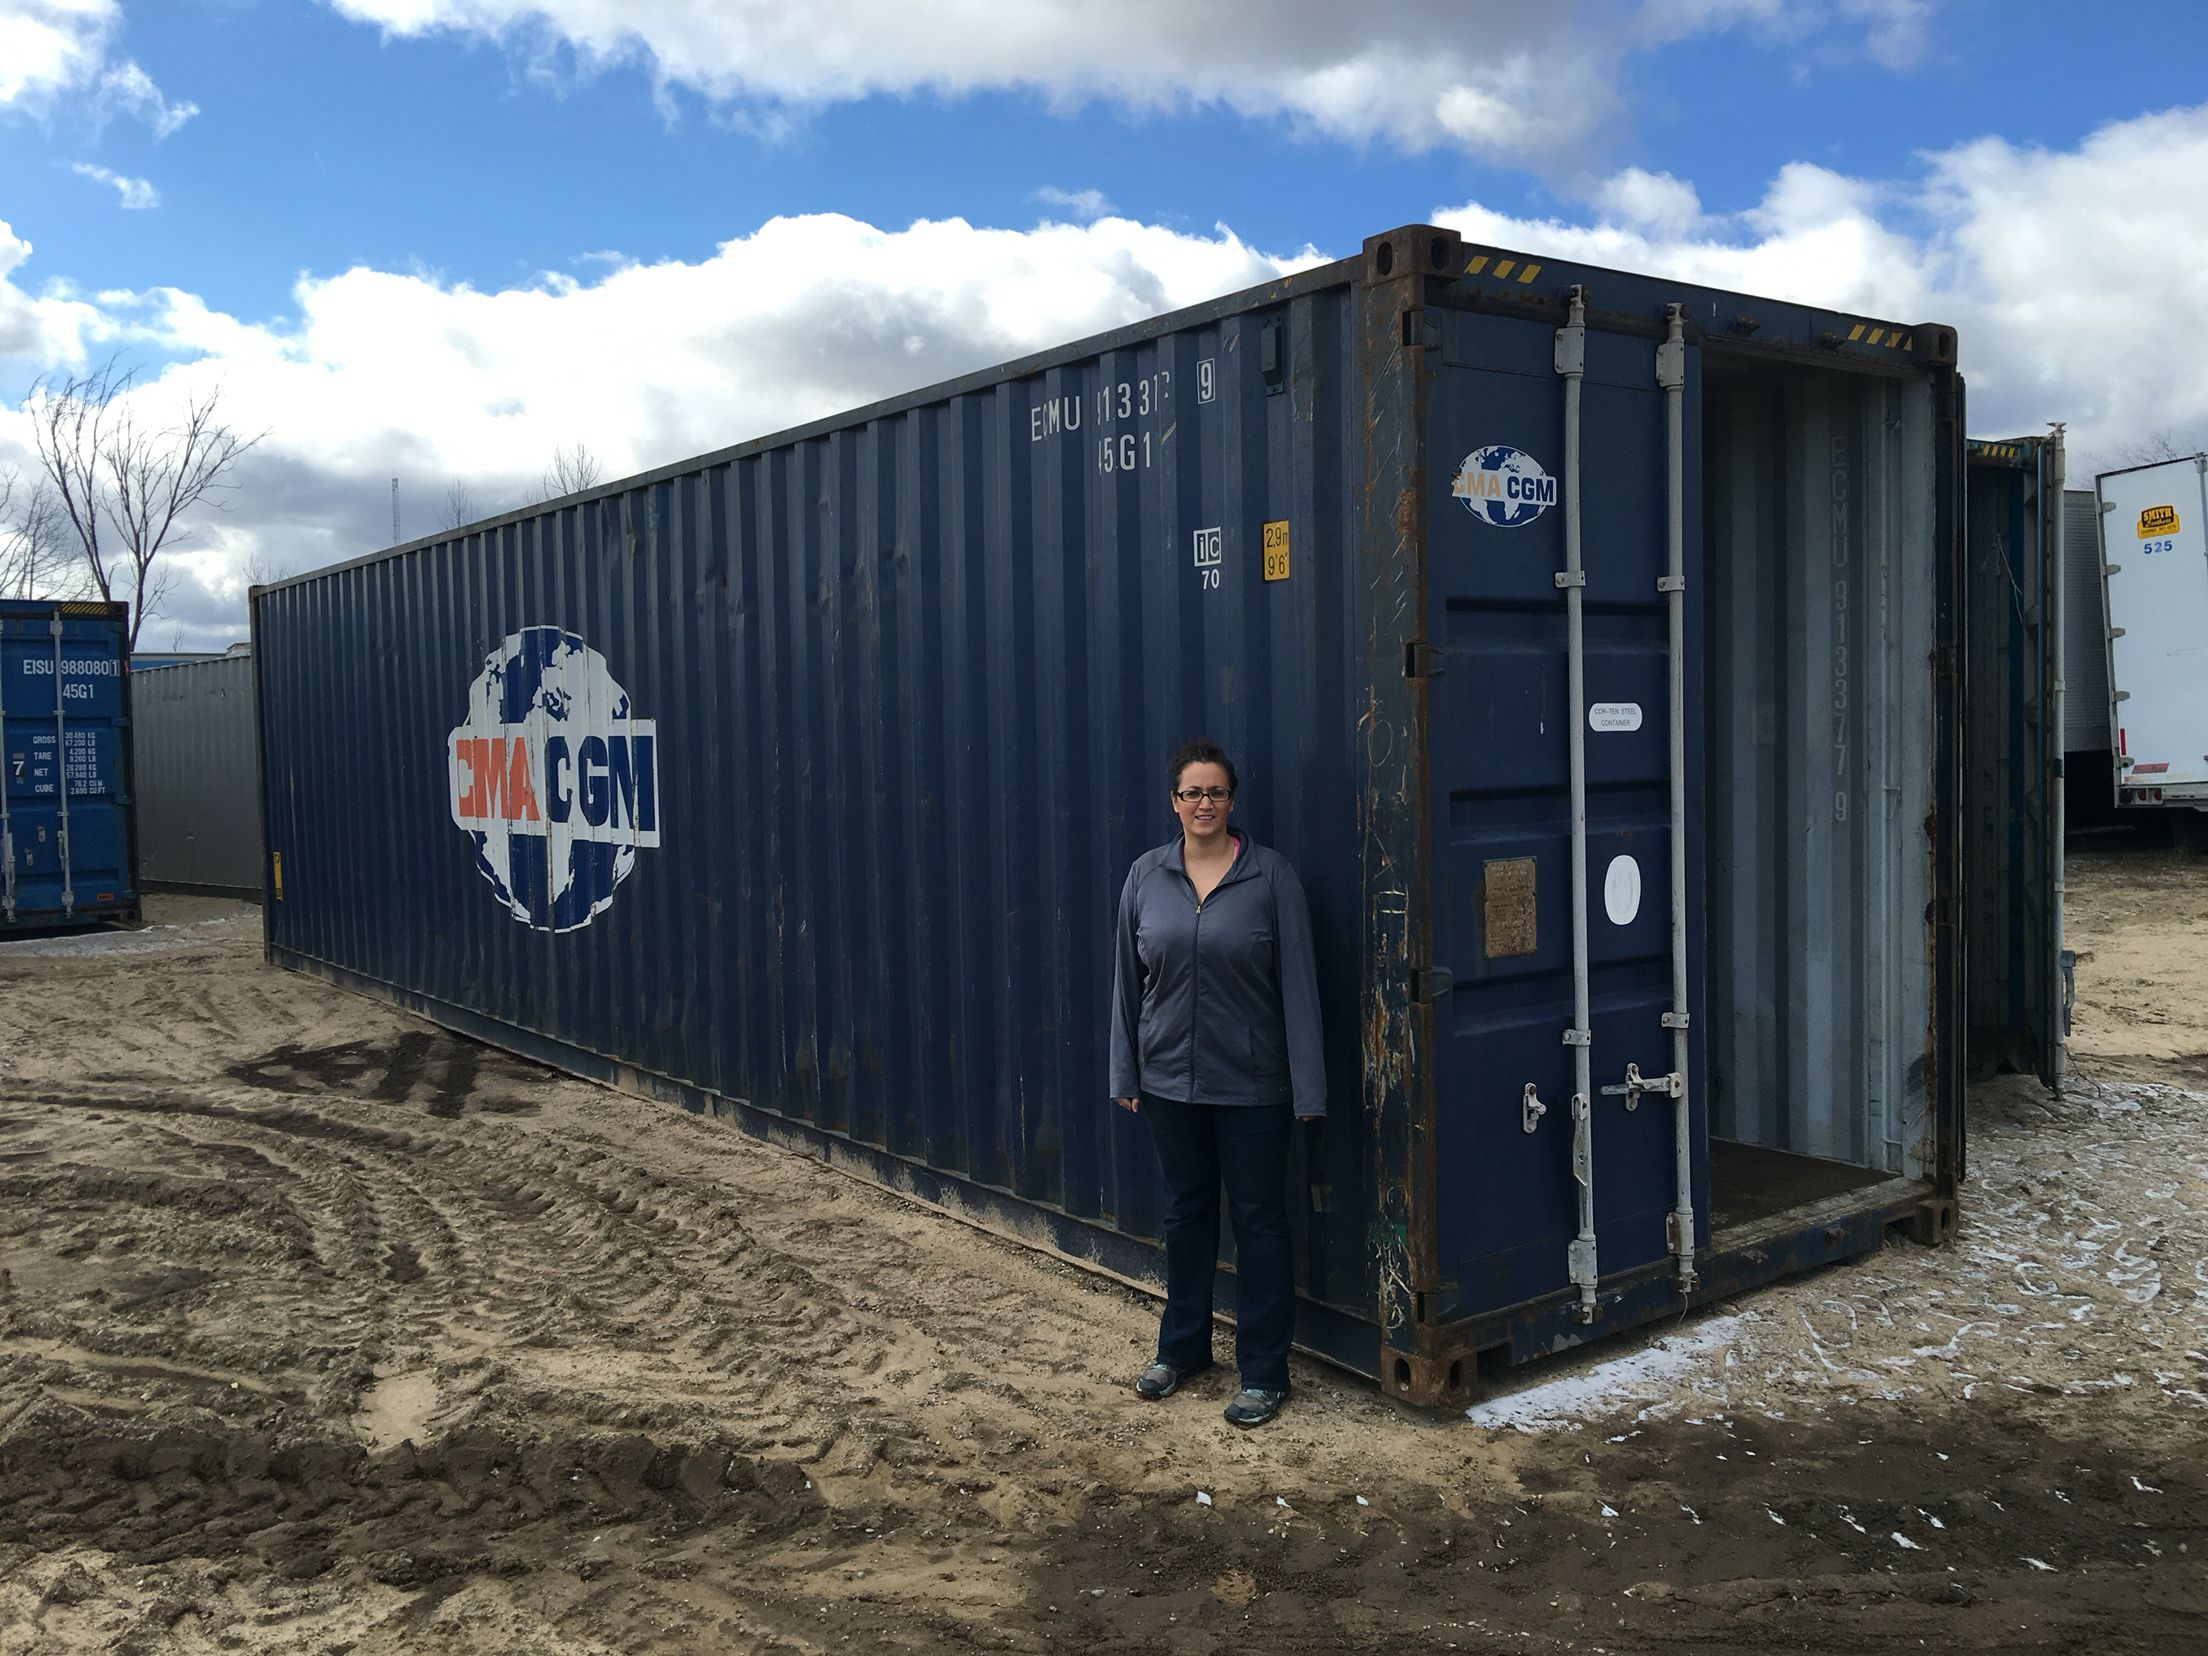 40 High Cube In Broker Yard With Human Scale Container House Locker Storage Prefab